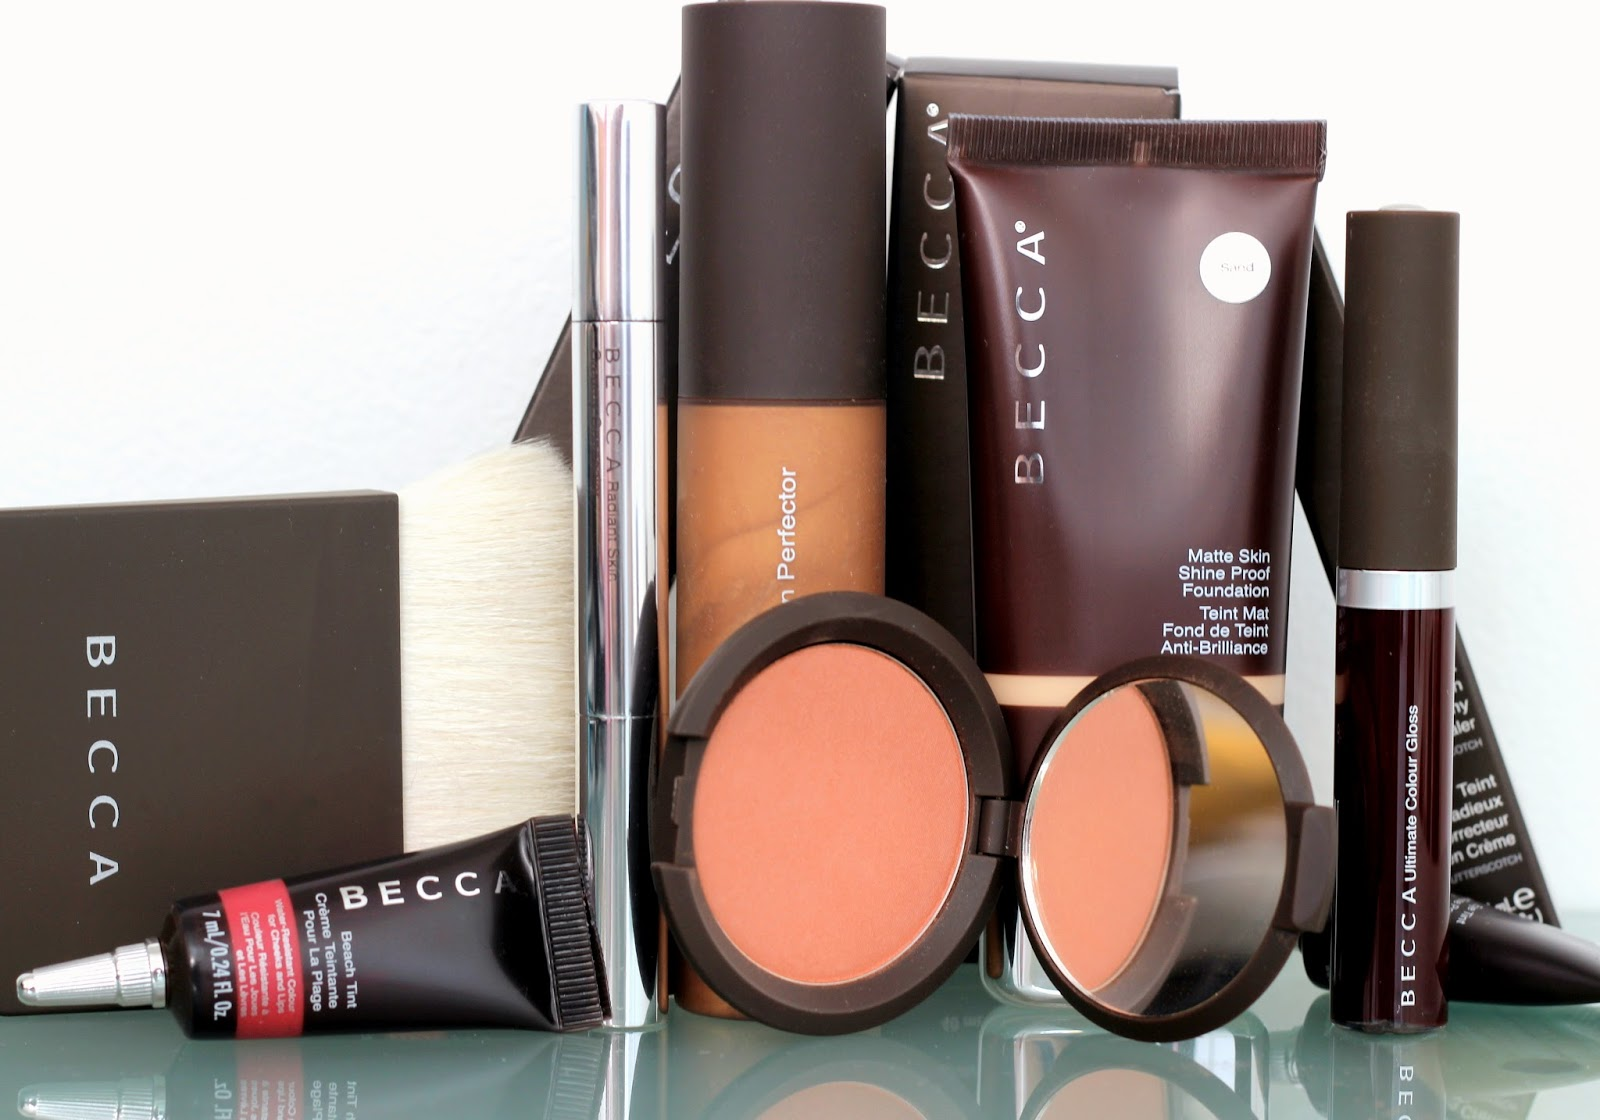 BECCA products